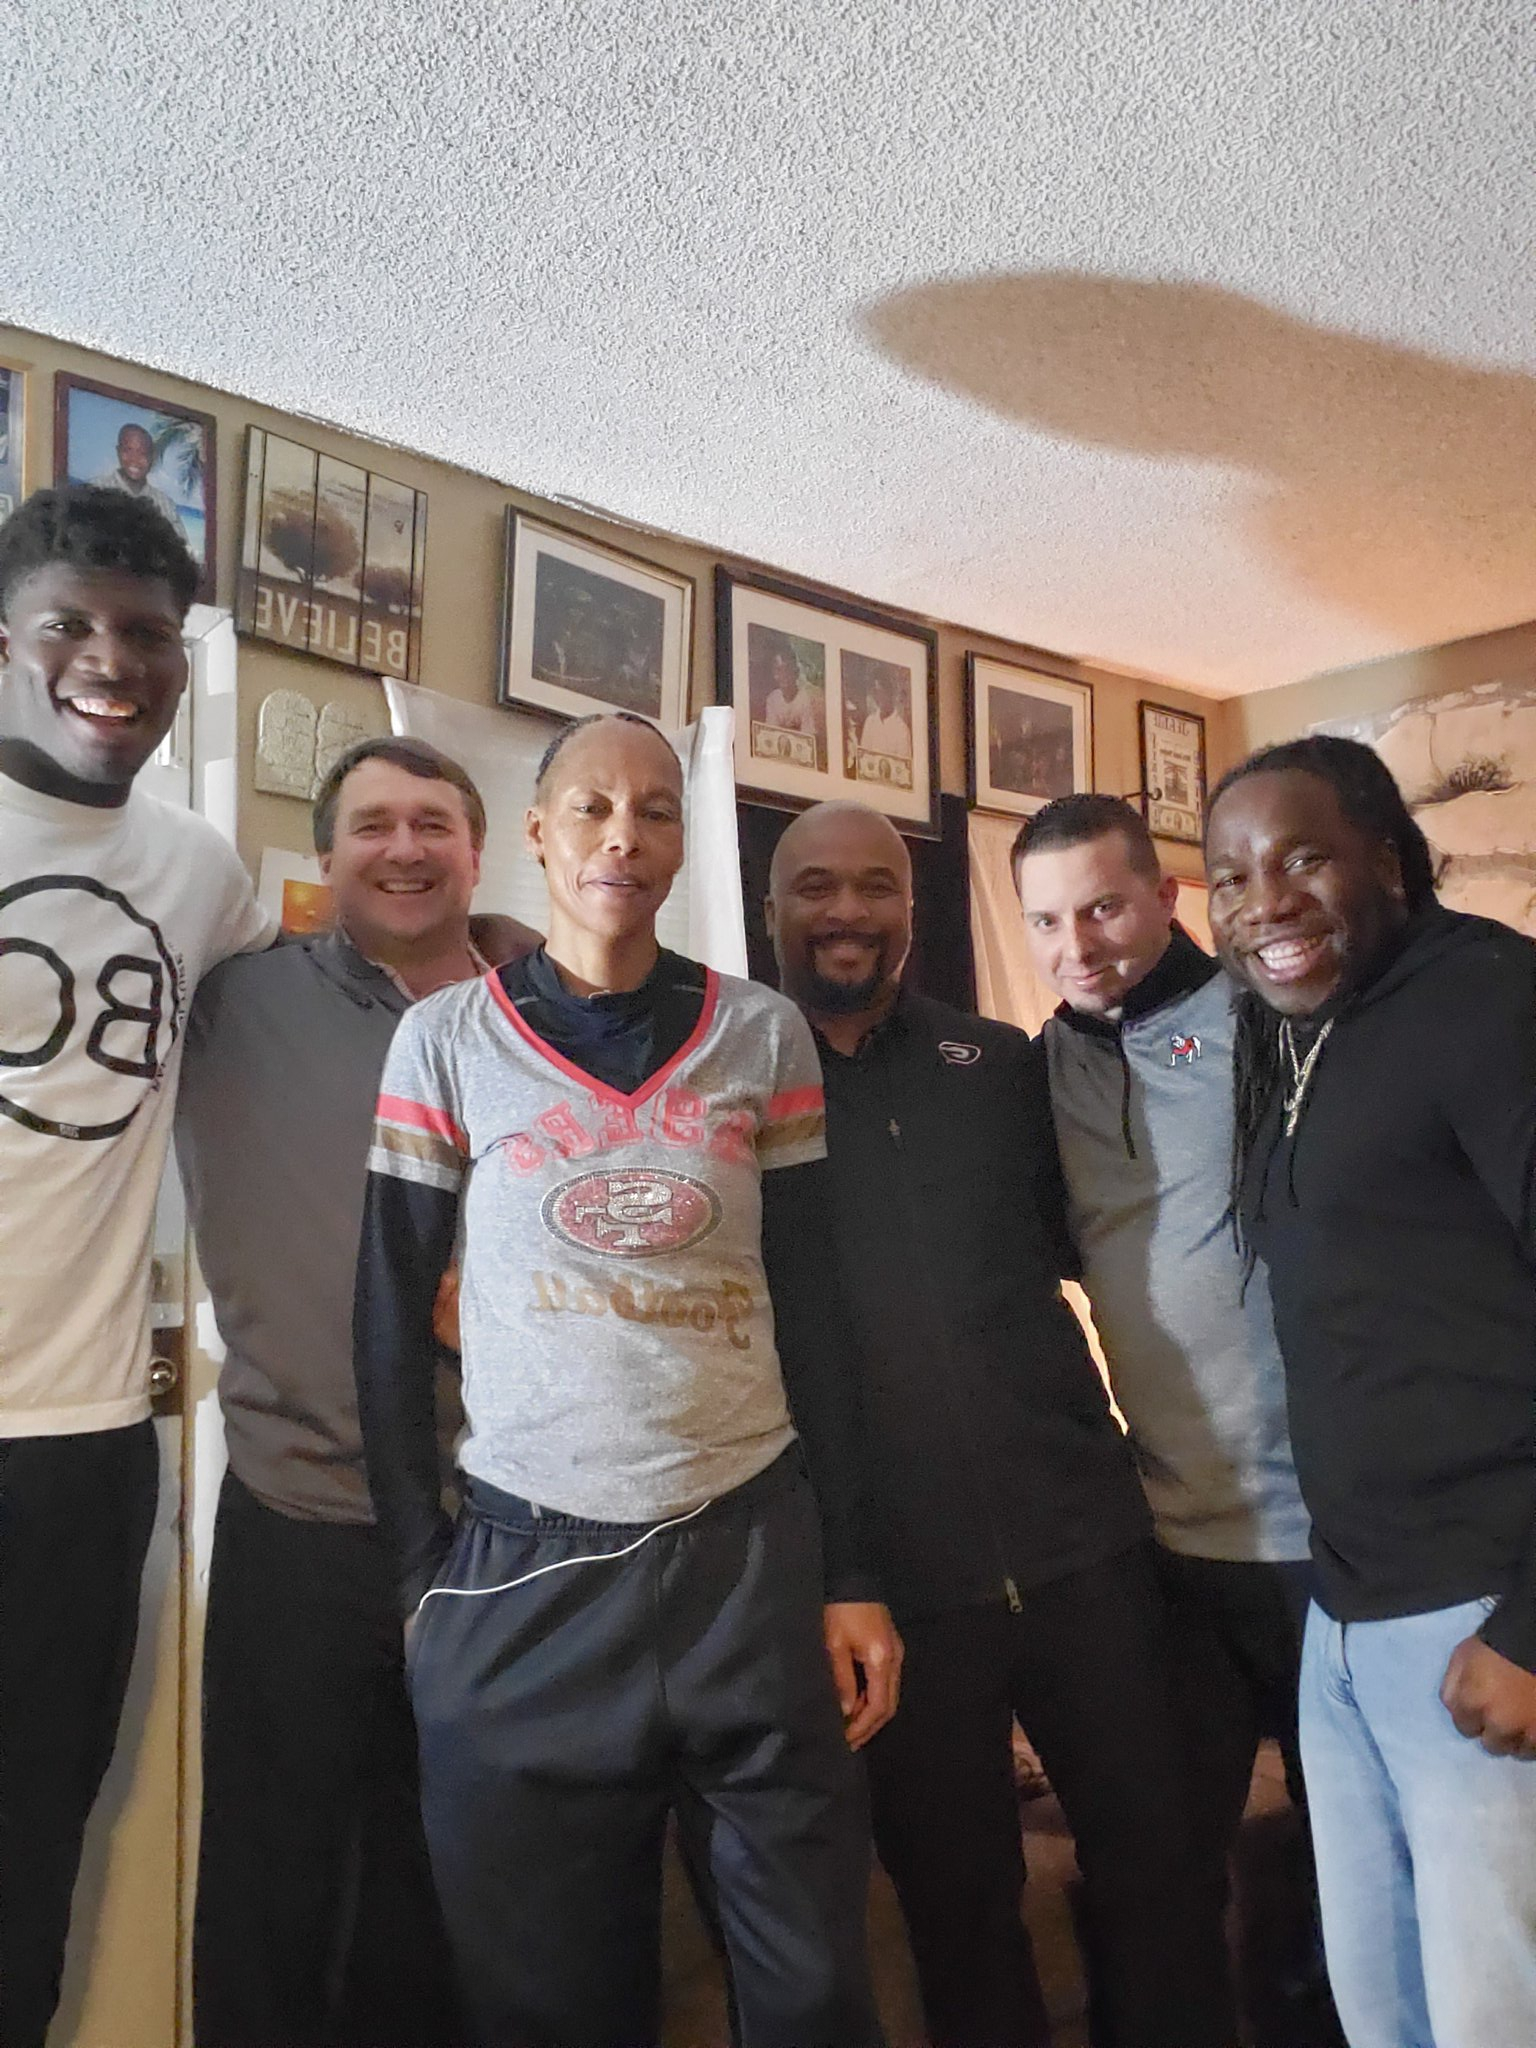 UGA head coach Kirby Smart and assistants Dell McGhee and Todd Hartley visit with Darnell Washington and in his family in Las Vegas, NV during the contact period in December. (Photo: Darnell Washington, Twitter)